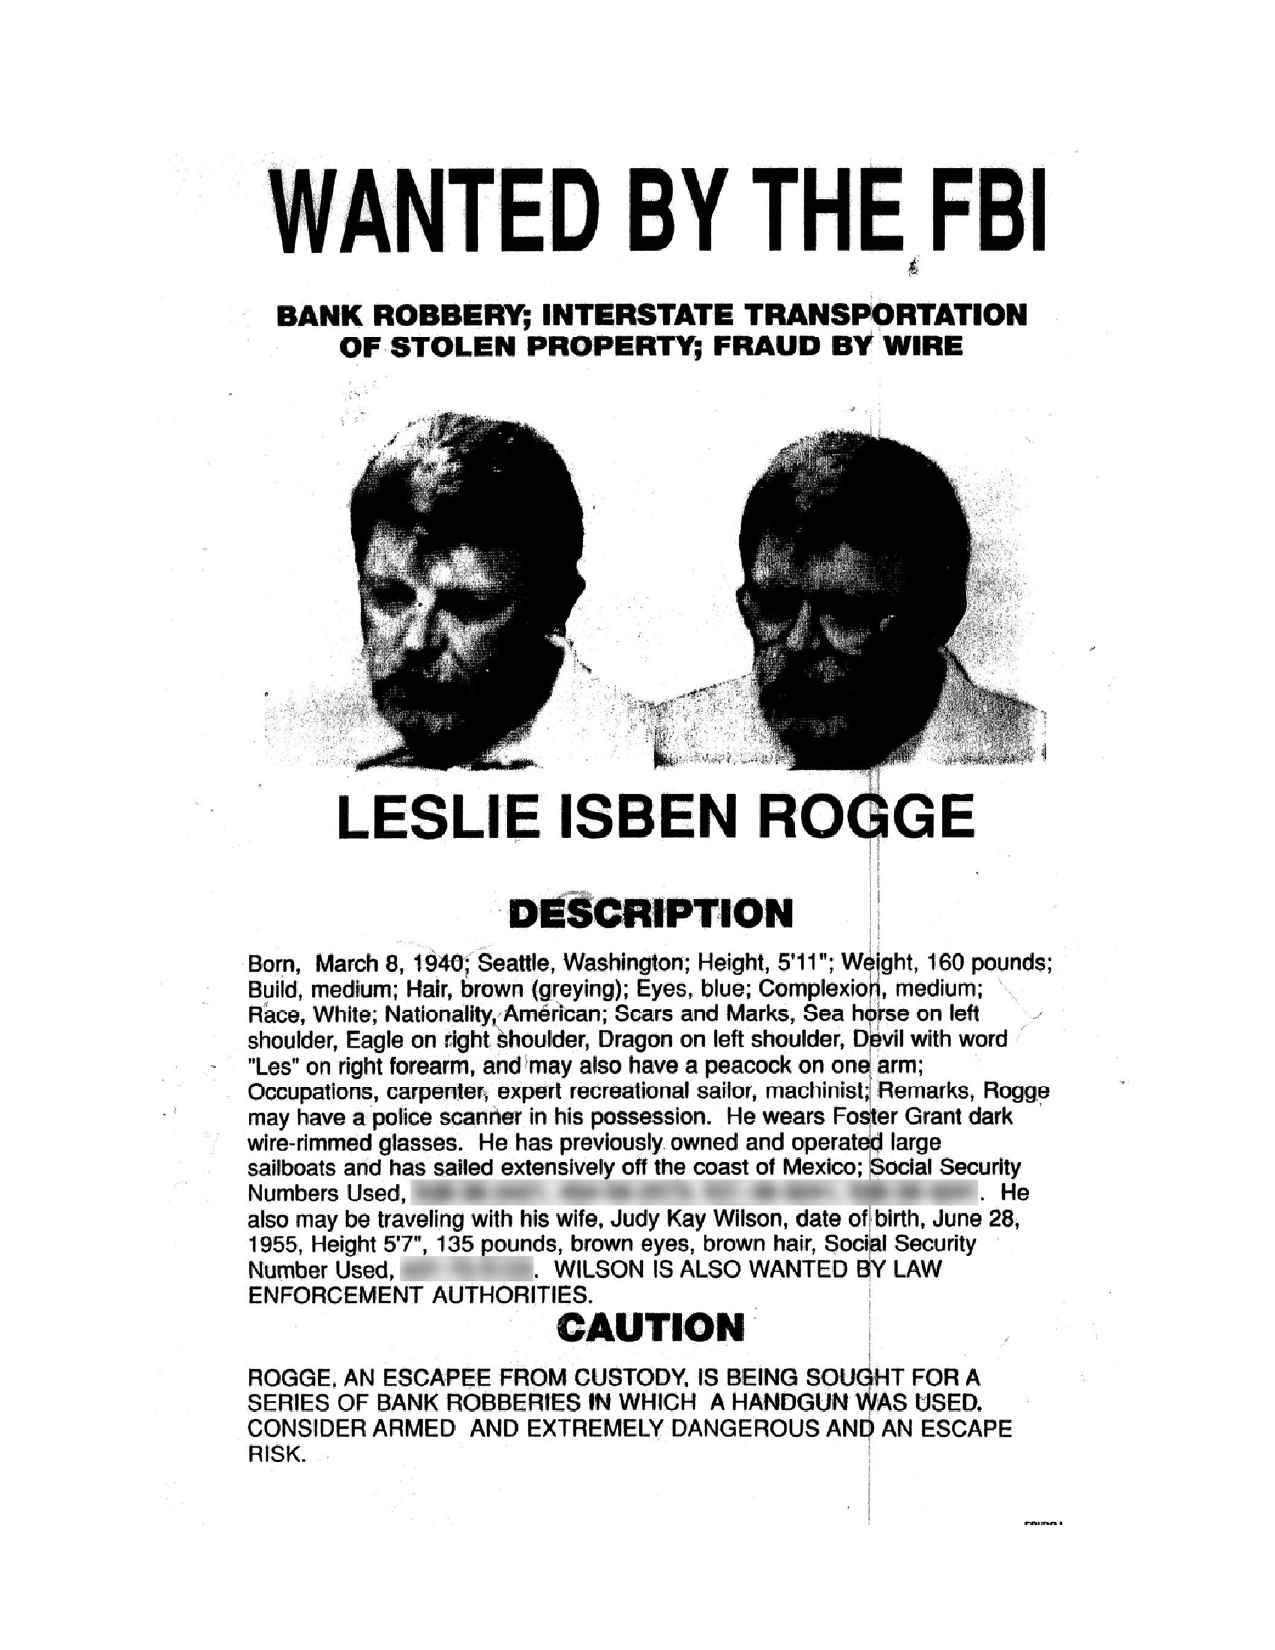 Original wanted poster from 1985 courtesy of D. Ray Barker